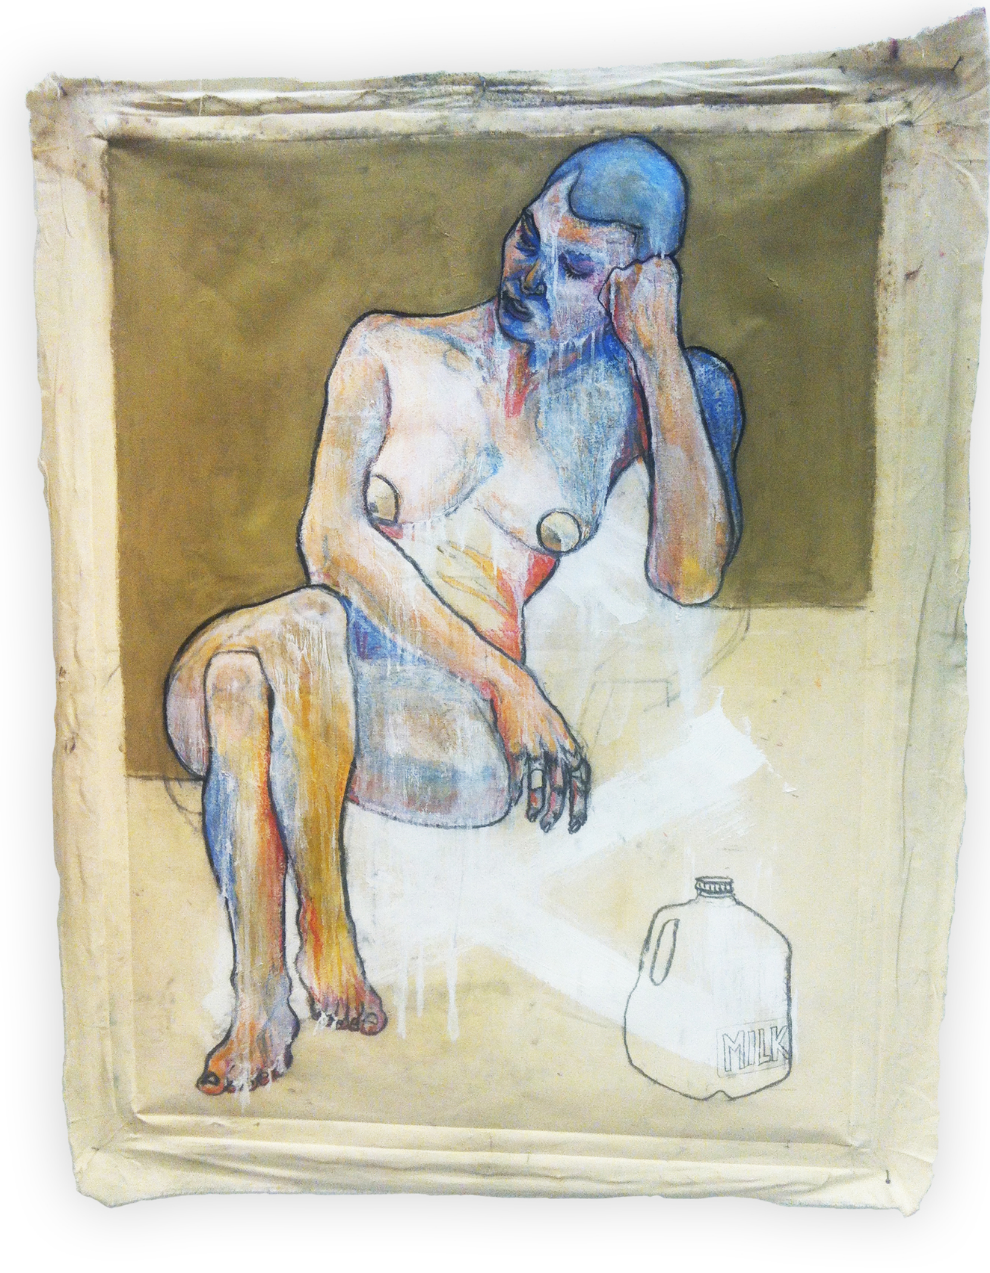 Milk Drinker, charcoal, pastel, oil and acrylic on found canvas